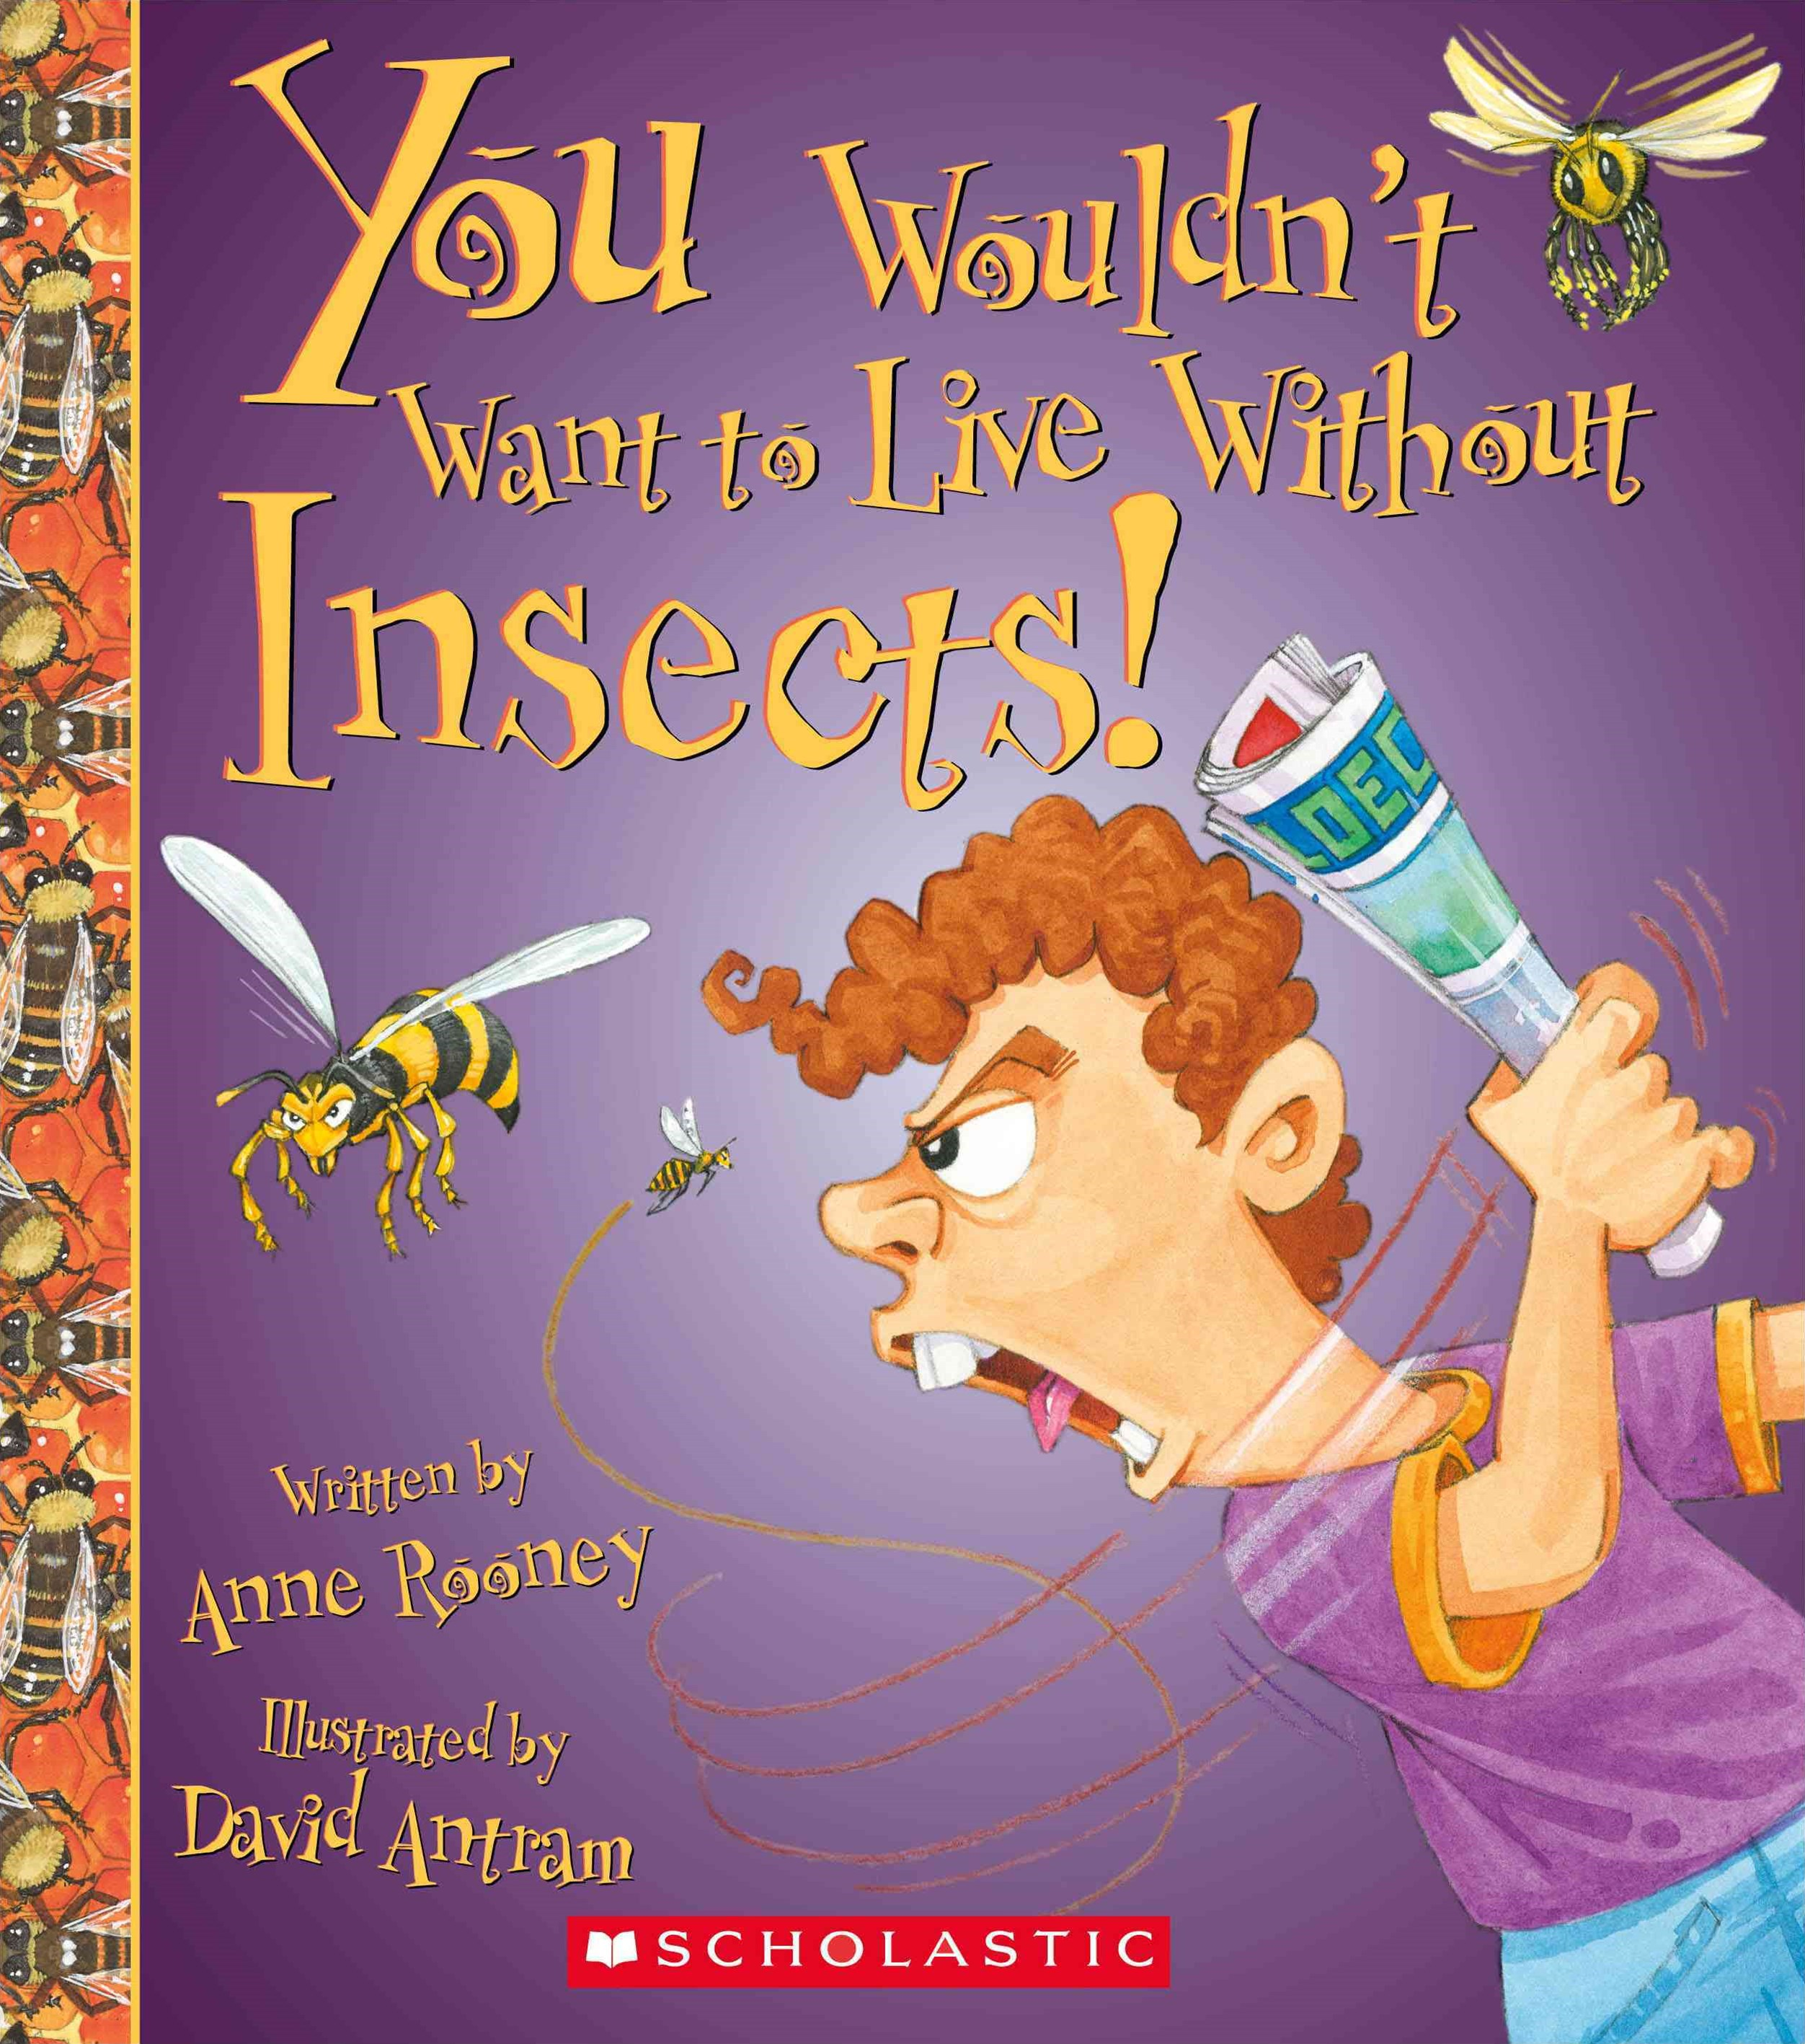 You Wouldn't Want to Live Without Insects!